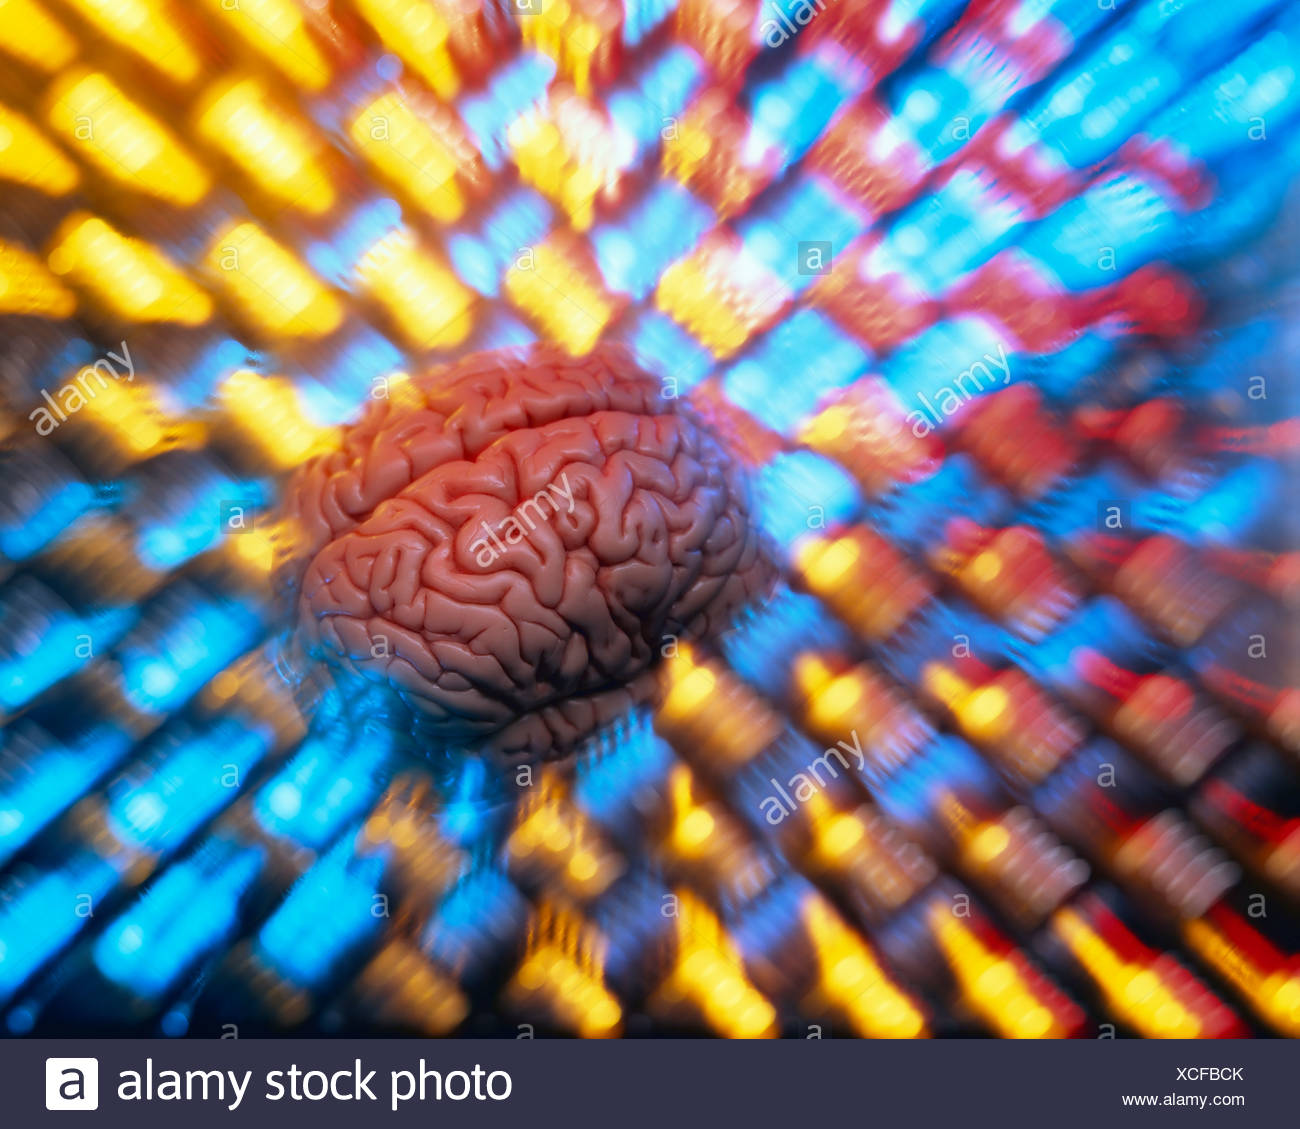 Brain, distorted, abstract, illustration, symbolic image for thinking - Stock Image